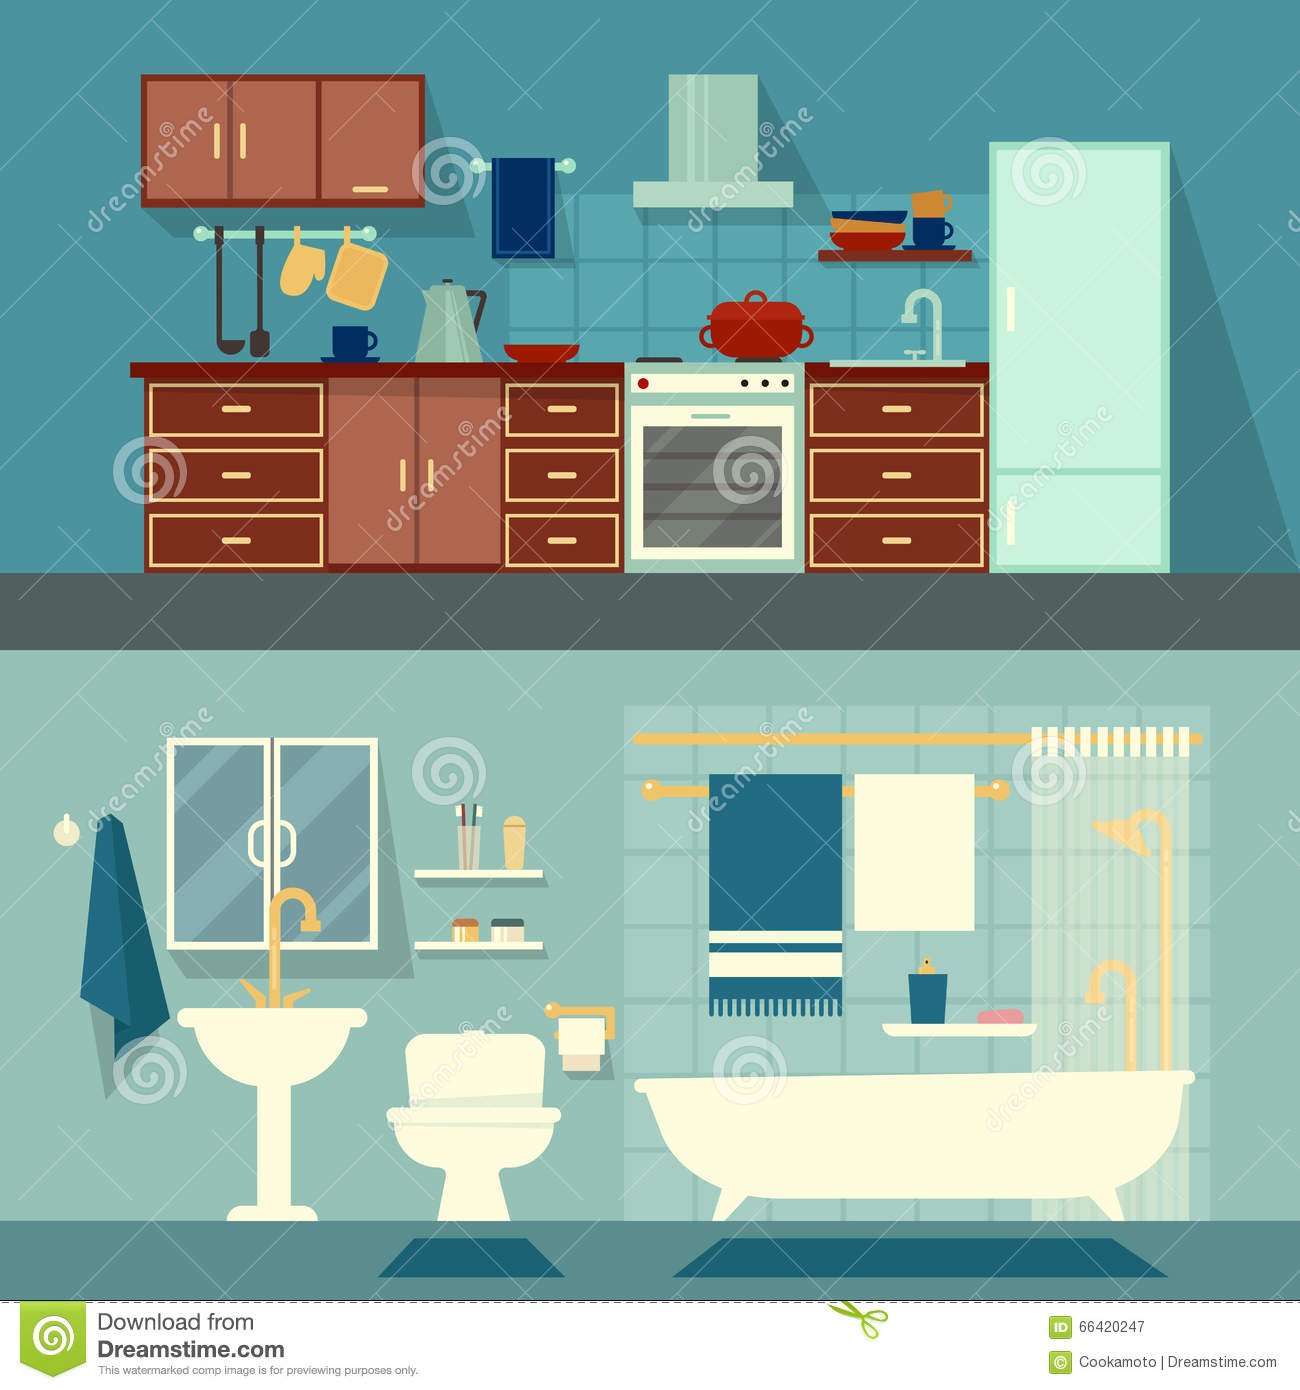 Vector Flat Illustration For Rooms Of Apartment House Home Interior Design Kitchen And Bath